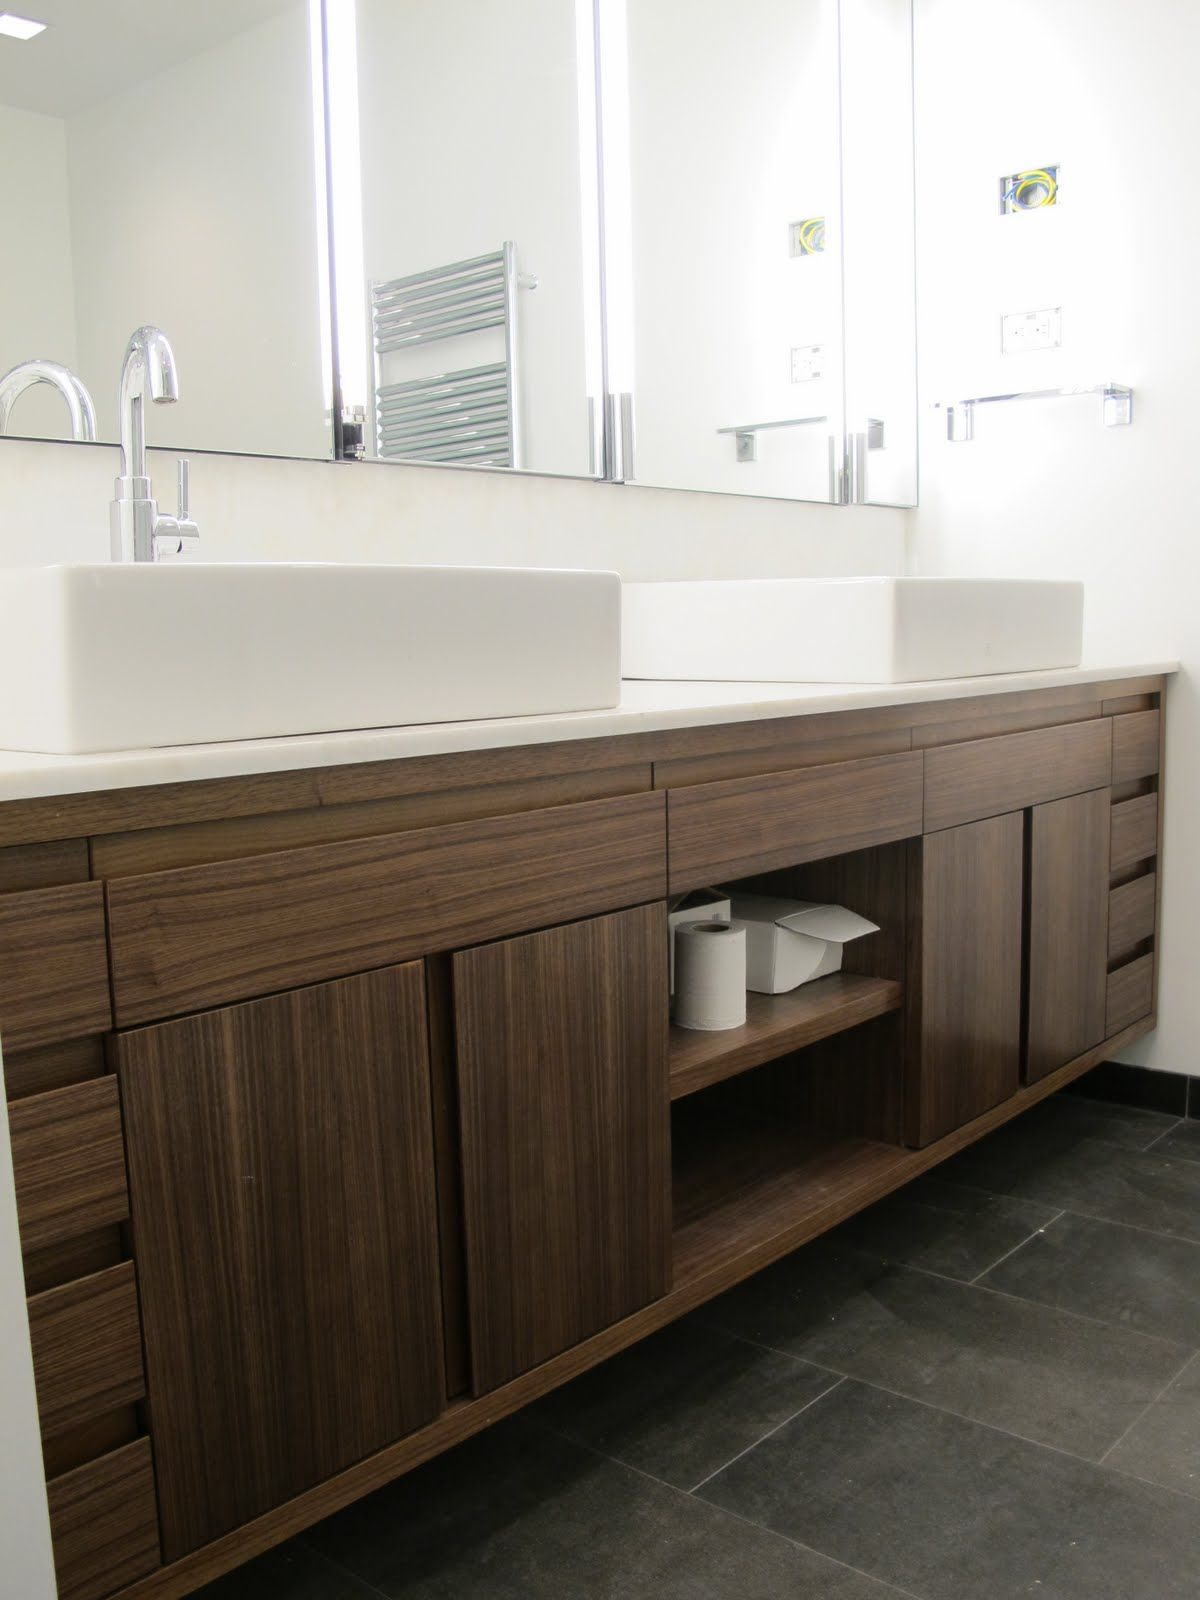 Custom Bathroom Vanities Long Island Ny amazing brown solid plywood custom floating vanity with storage